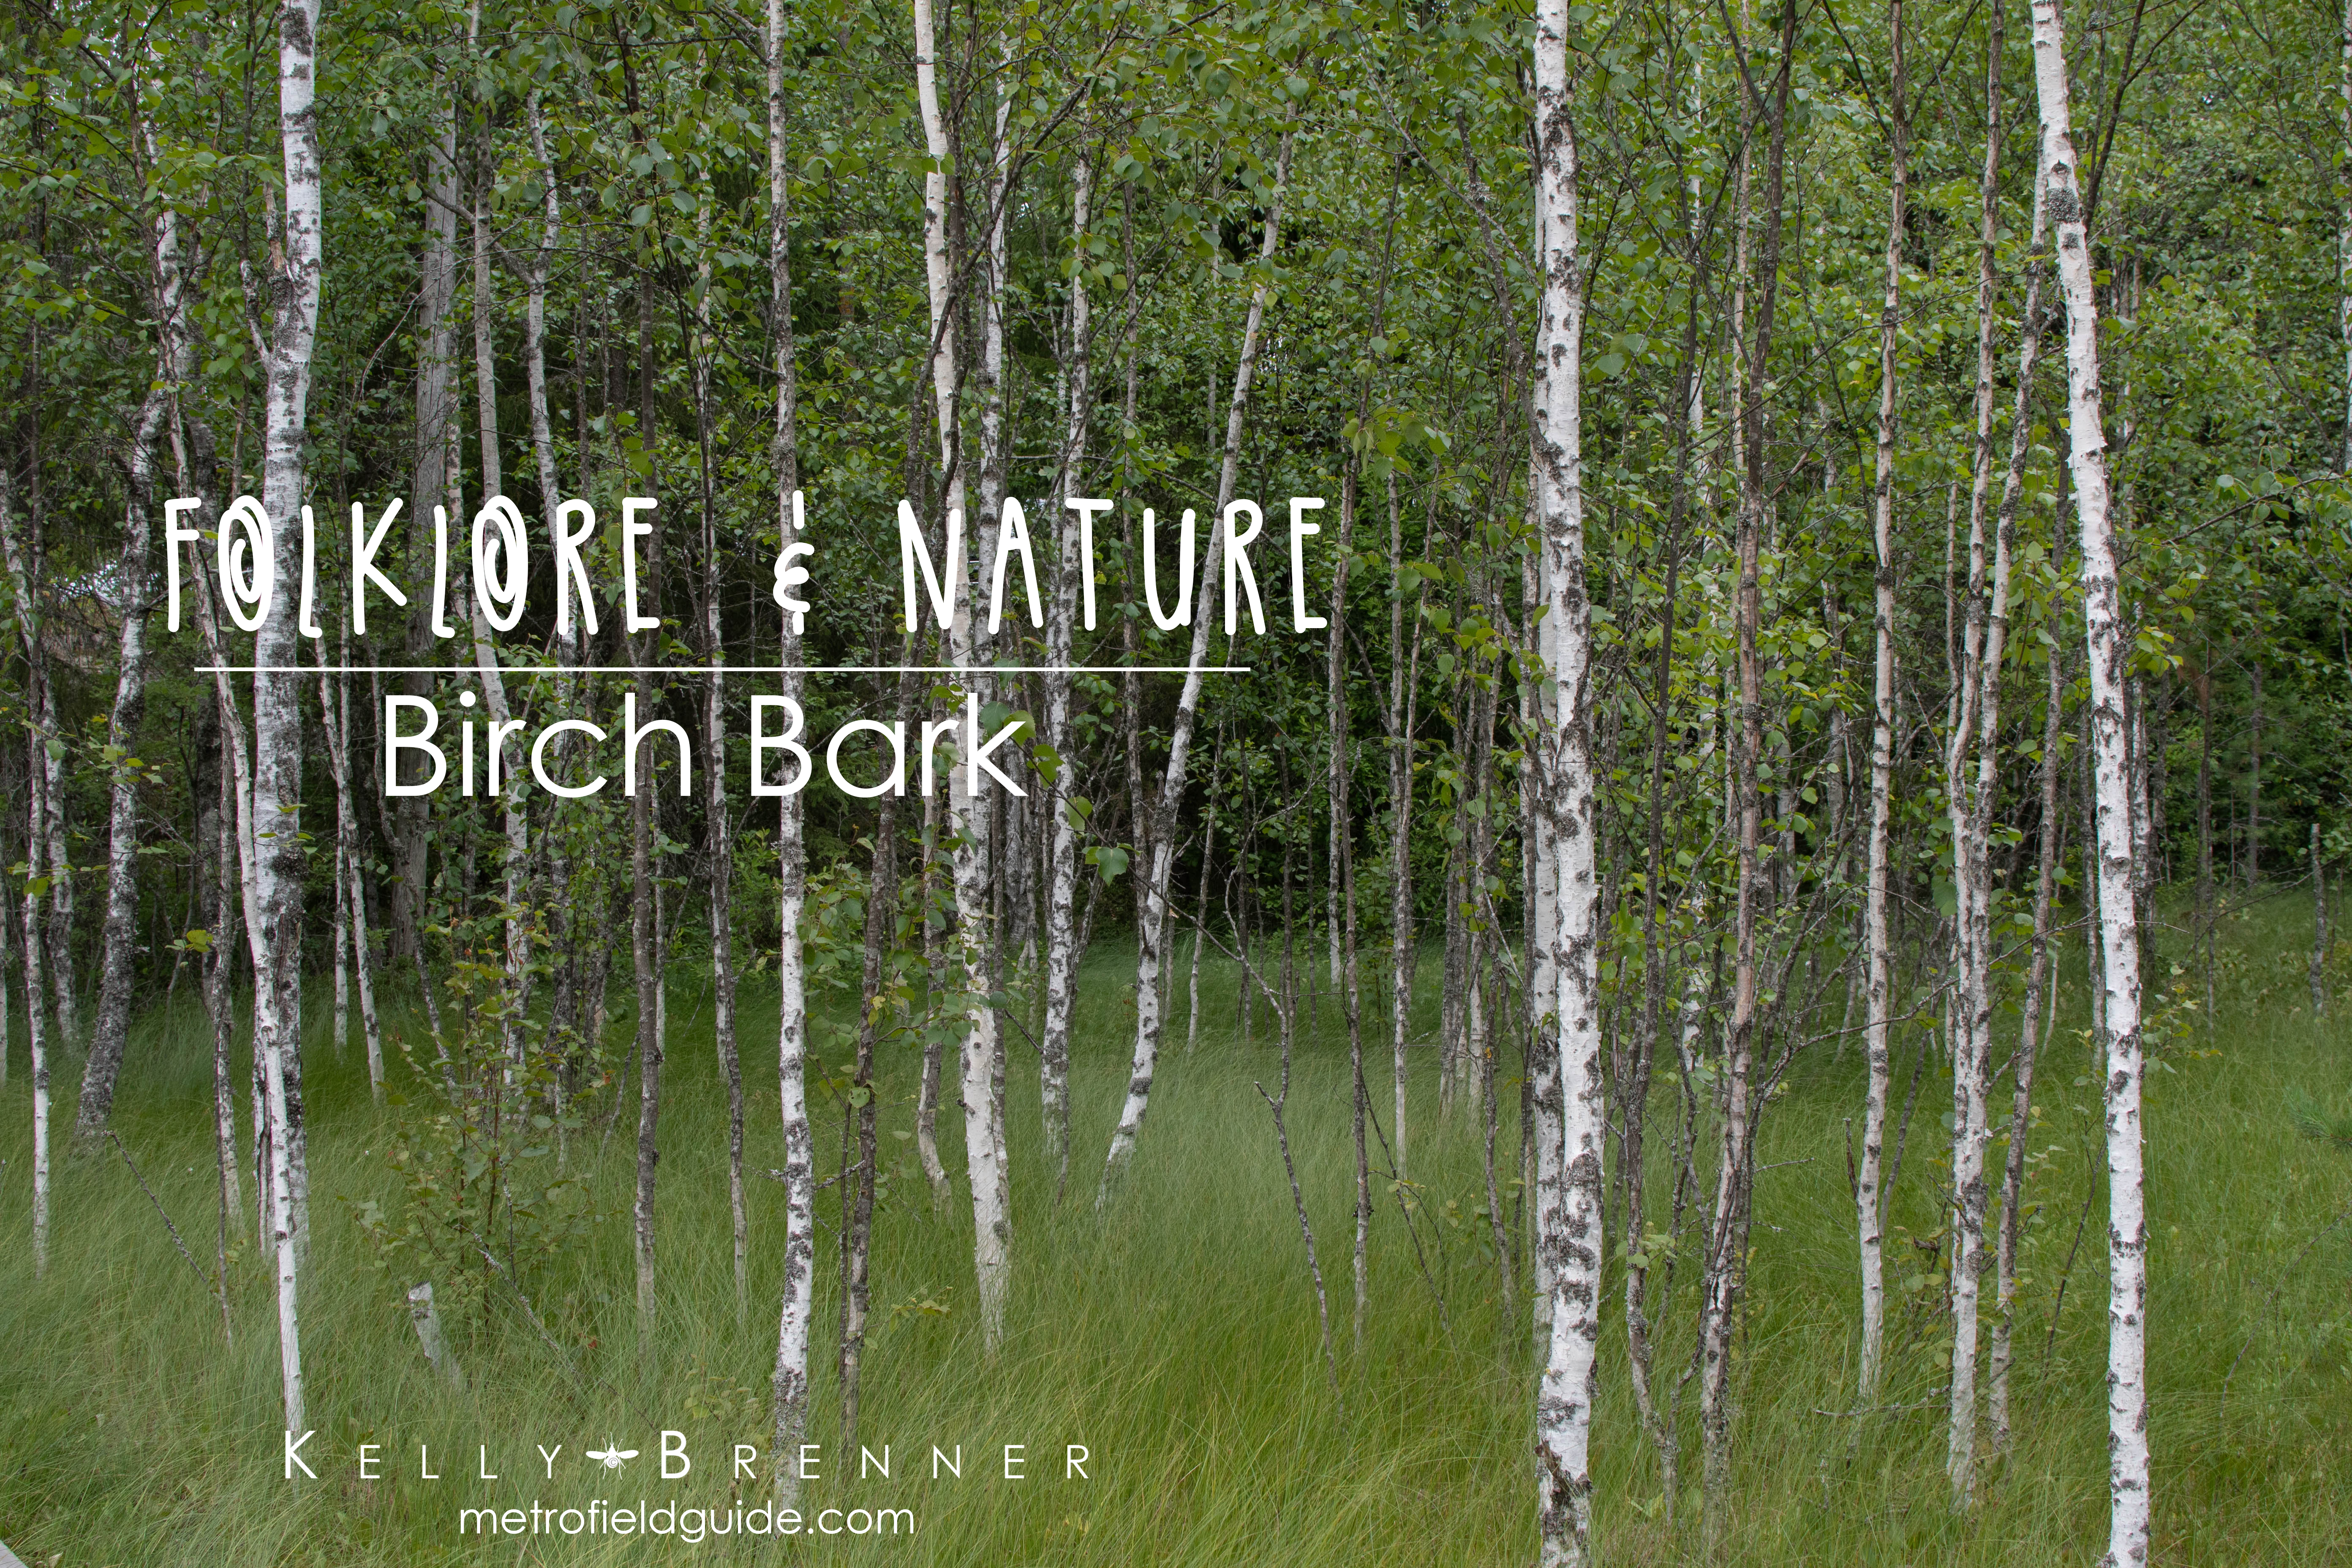 Folklore & Nature: Birch Bark